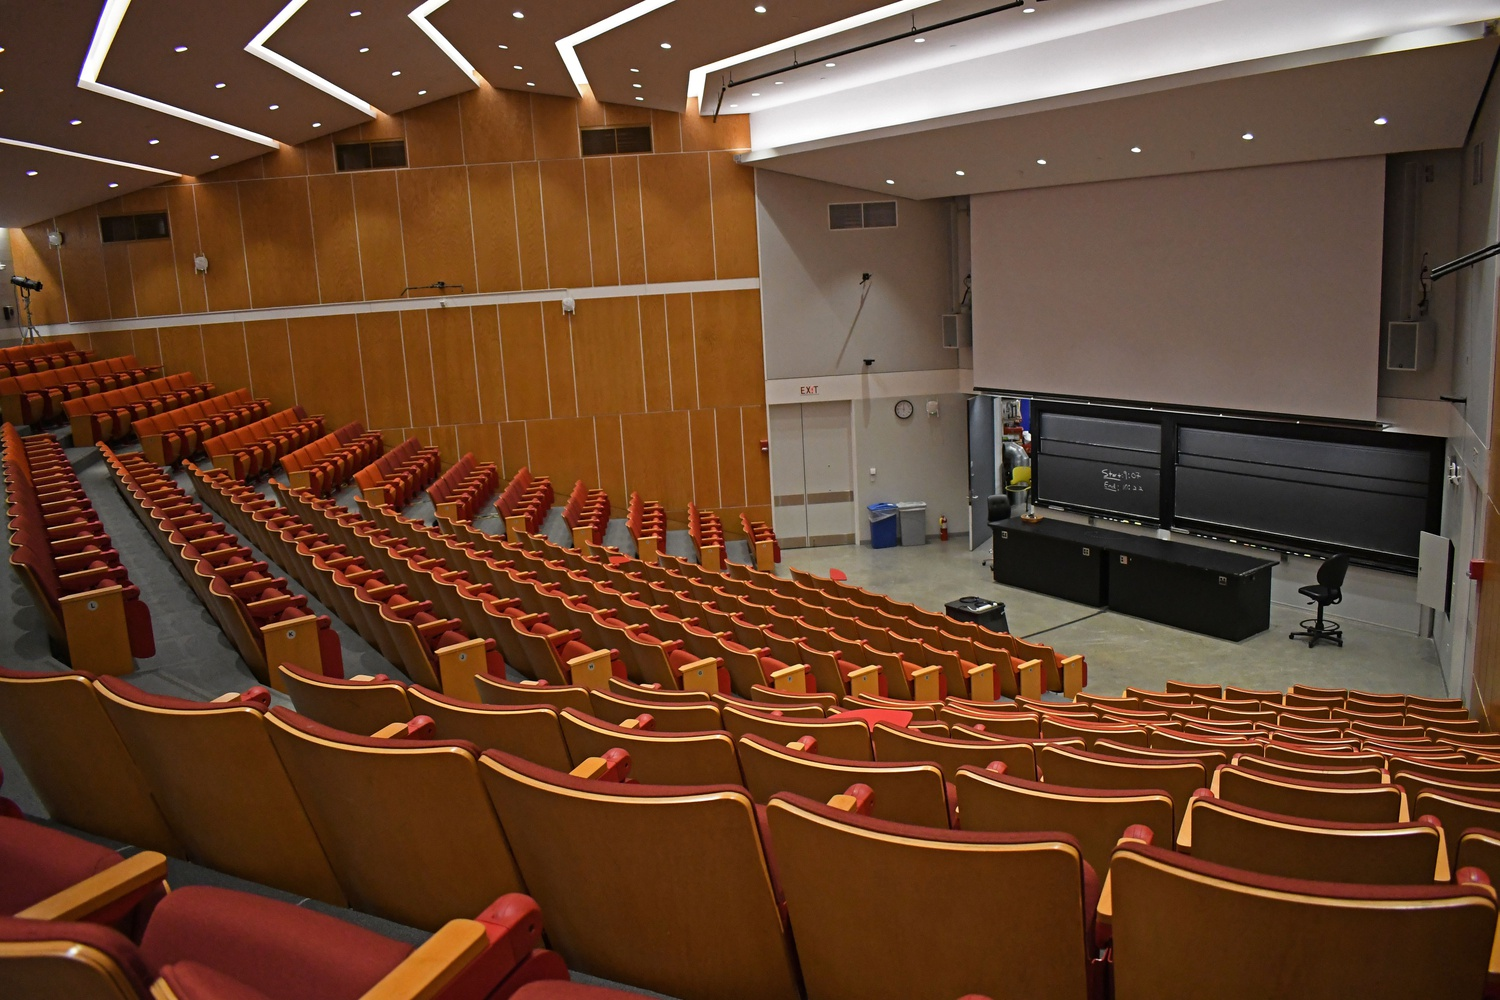 Under social distance guidelines for a possible return to campus, large lecture courses held in halls like Science Center C would require a significantly different organization to ensure distance is kept between each student.